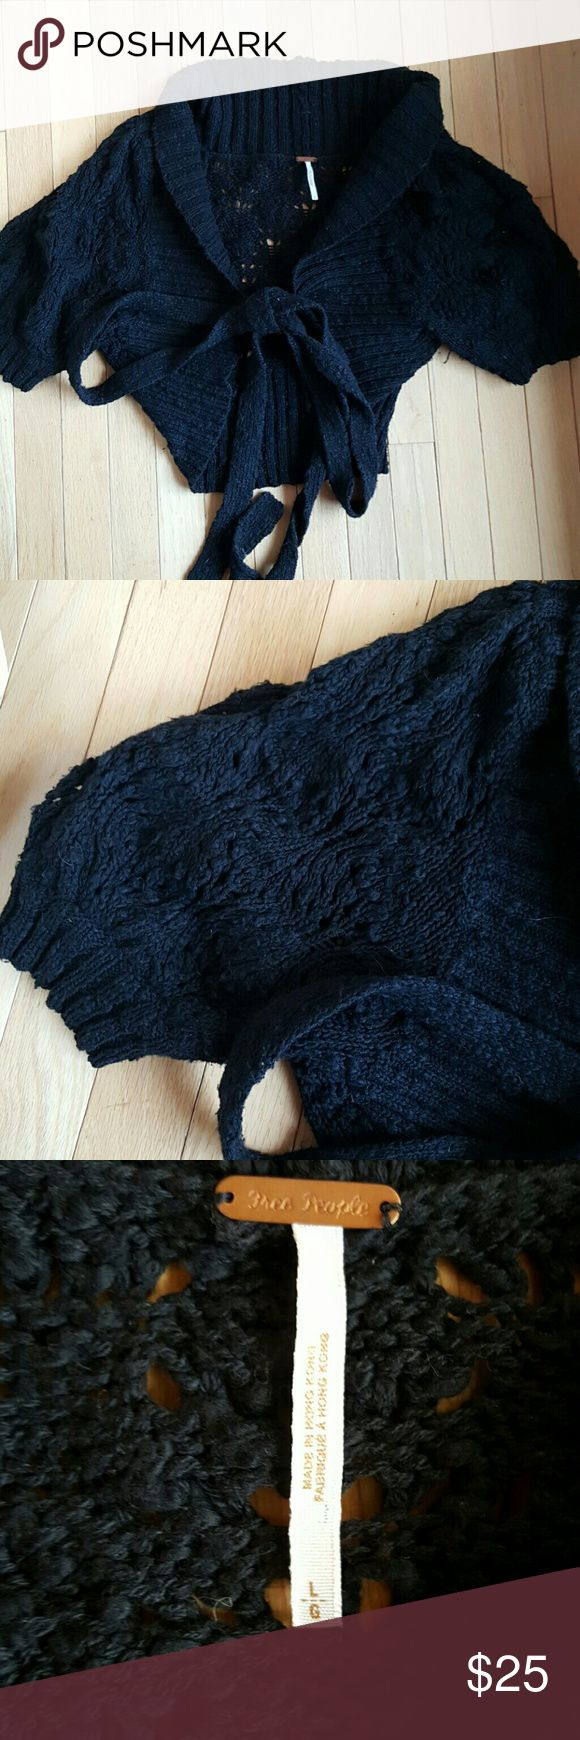 Free people crochet cropped tie sweater. Large Free people crochet cropped tie sweater large. Extra long ties for wrapping or big bow. Puffy sleeves. Shawl collar. Free People Sweaters Shrugs & Ponchos